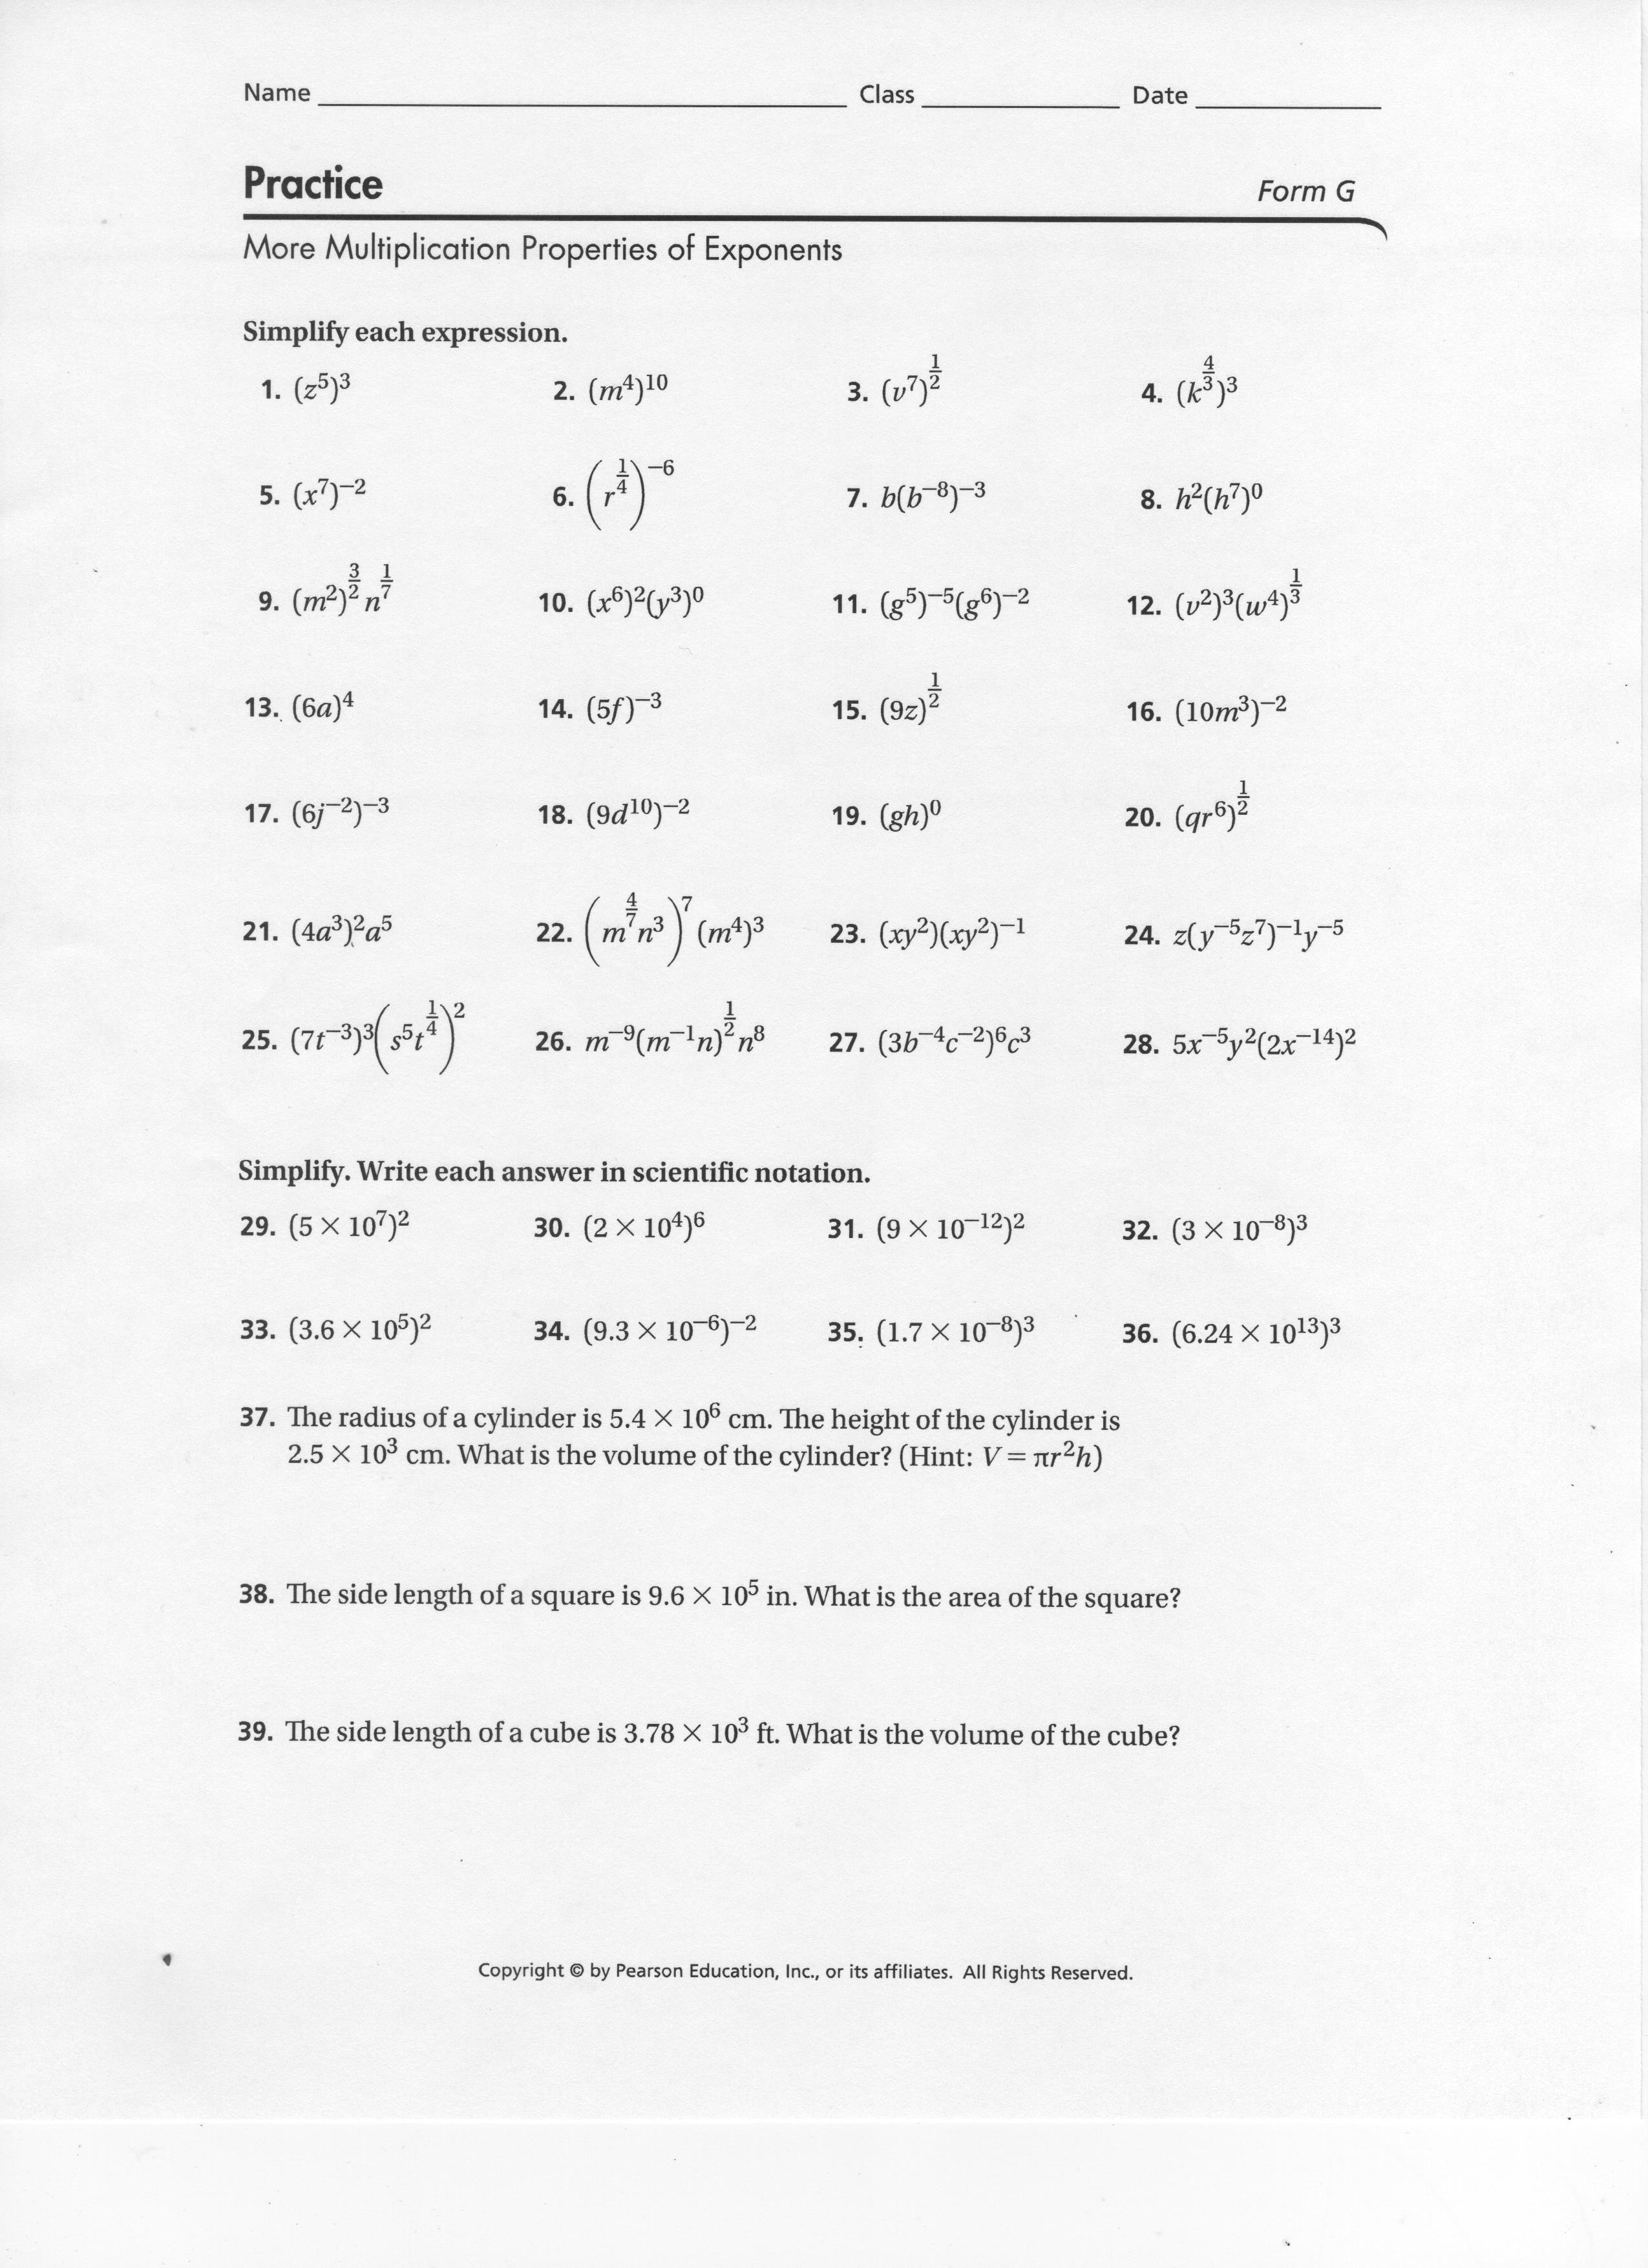 More Properties Of Exponents Worksheet Davezan – Multiplication Properties of Exponents Worksheet